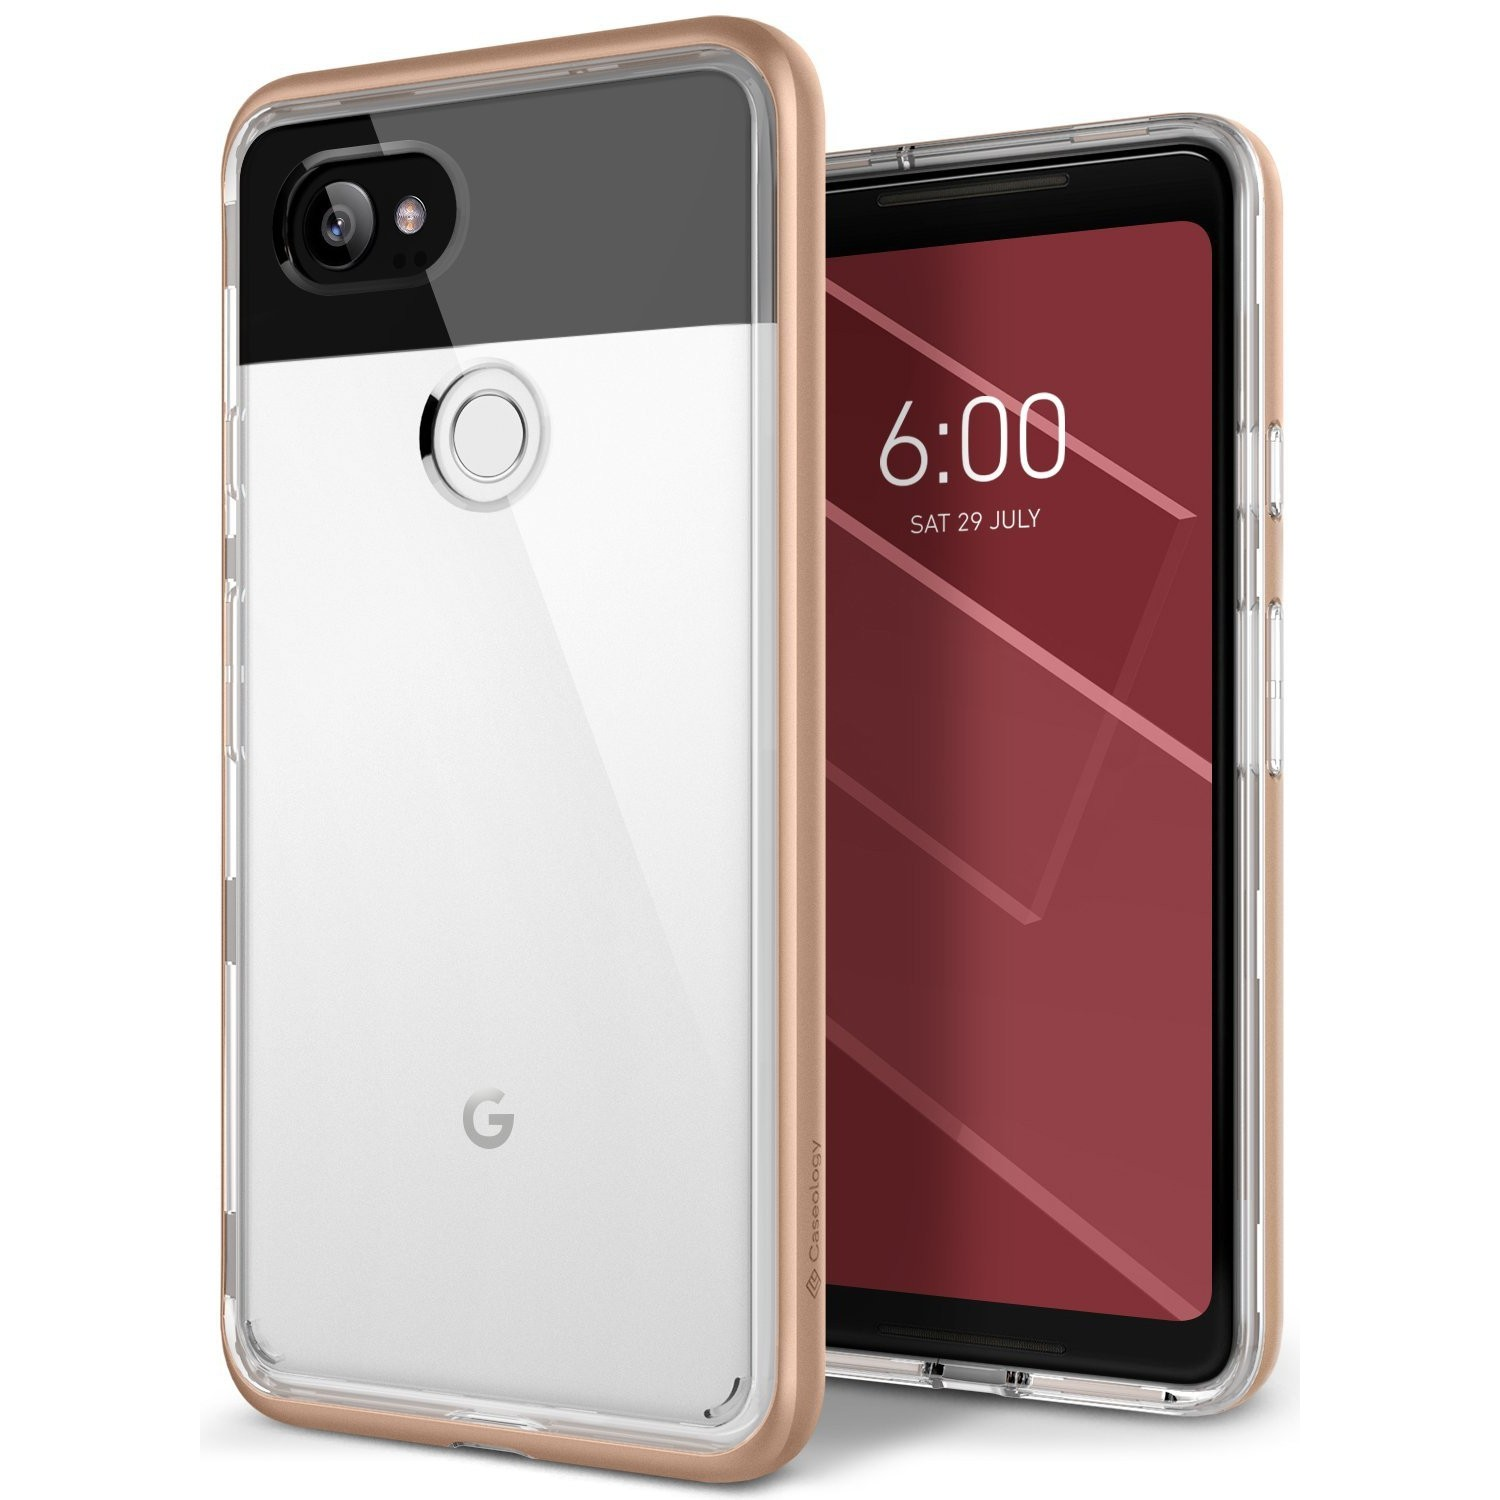 new concept b338a f5c51 Google Pixel 2 XL Case, Caseology [Skyfall Series] Slim Protective Dual  Layer Cover Geometric Design for Google Pixel 2 XL (20